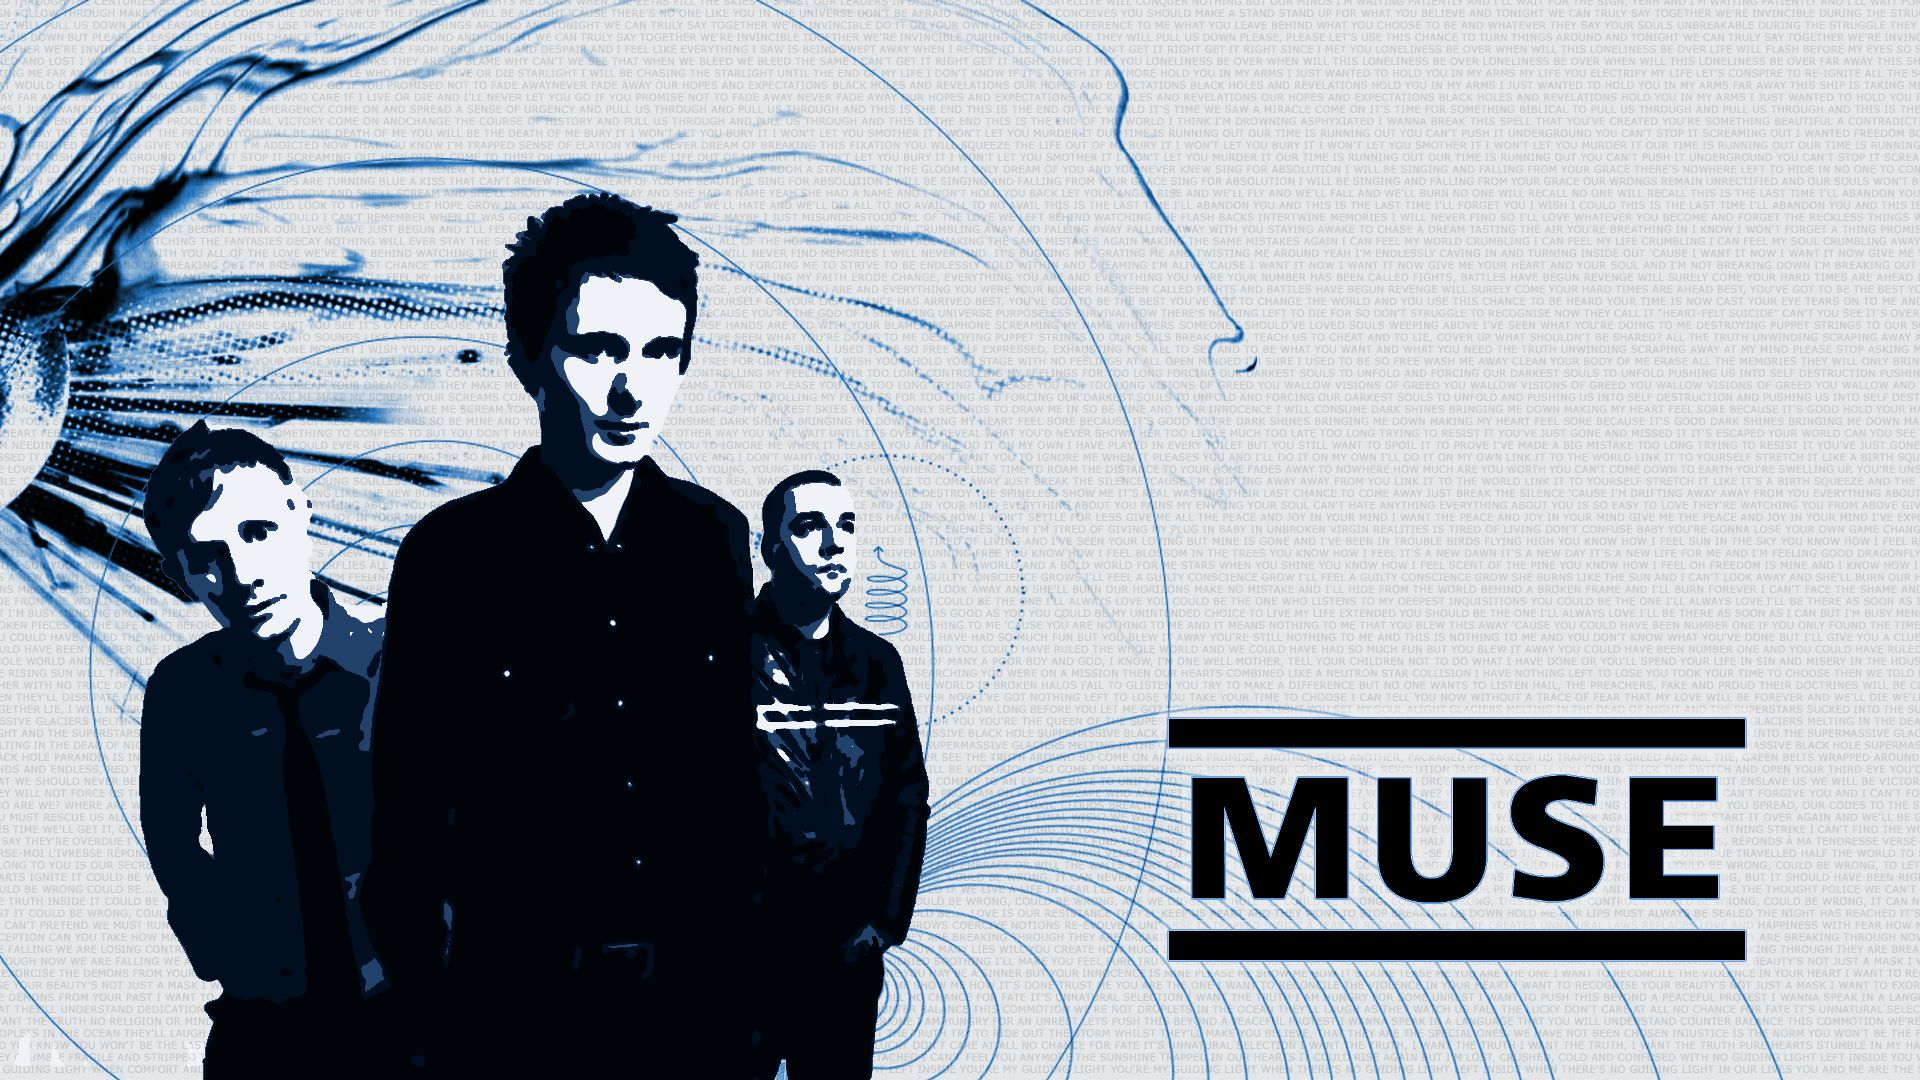 Muse free picture